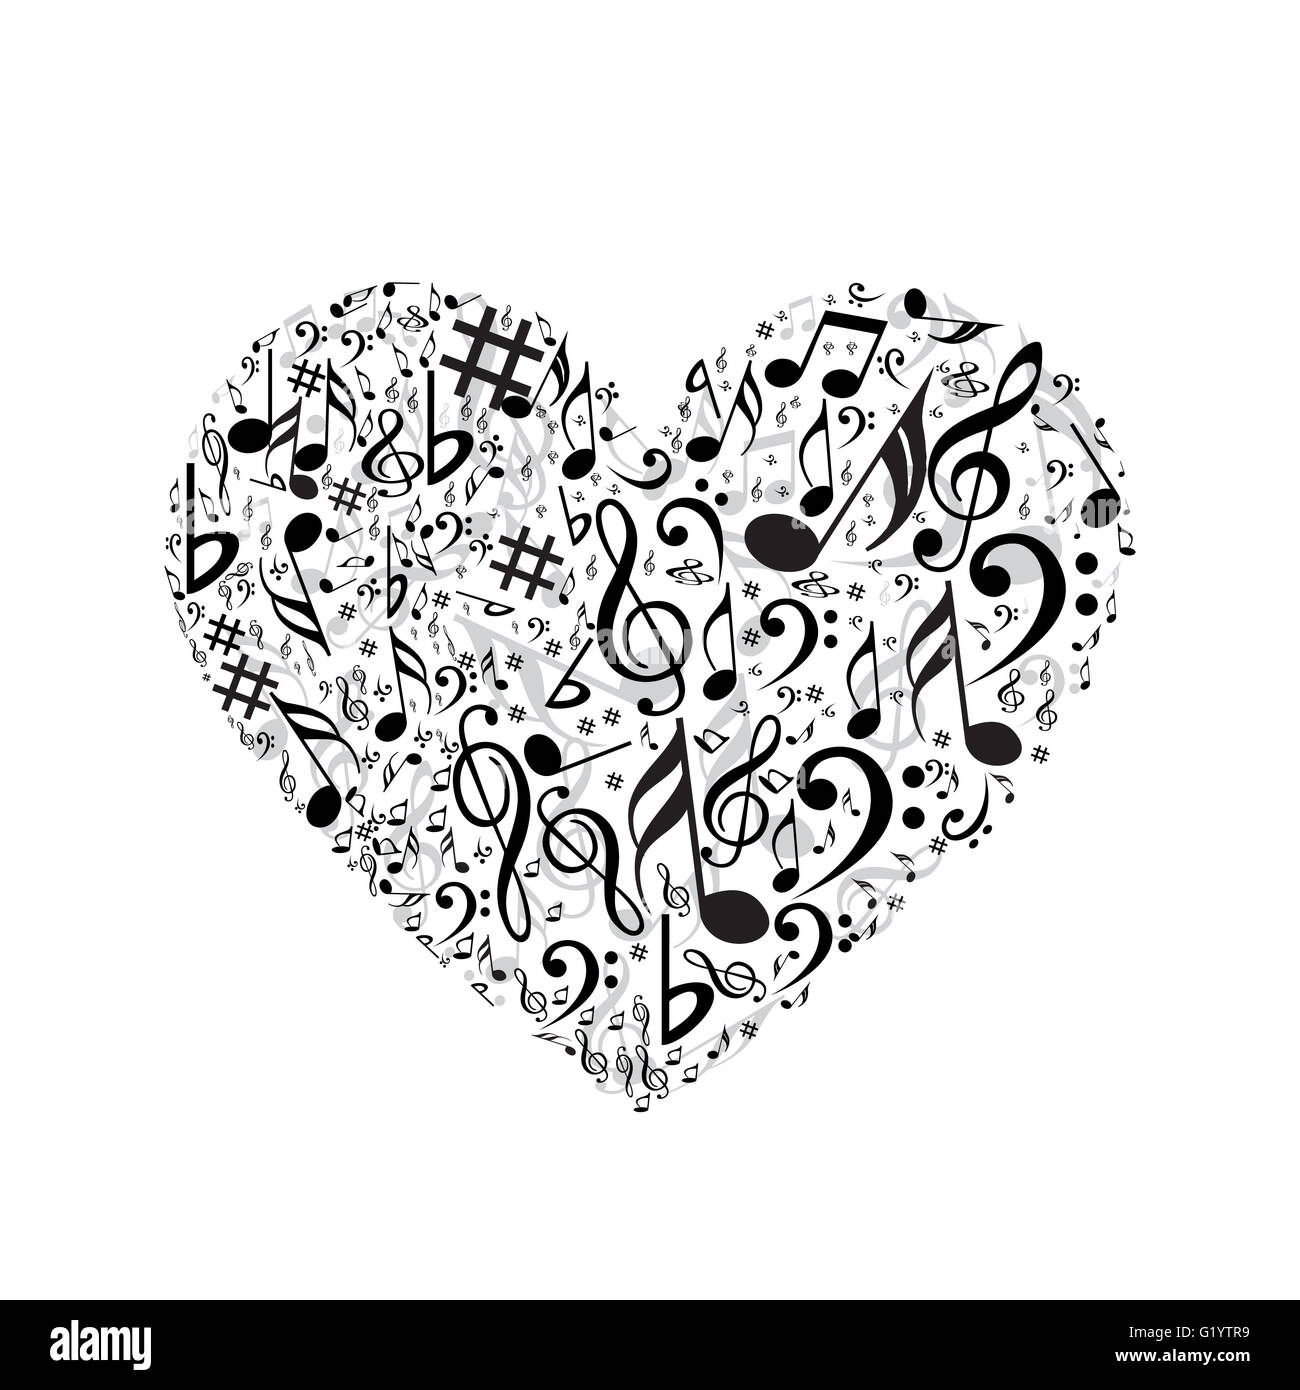 Music Concept Heart Stock Photos Music Concept Heart Stock Images